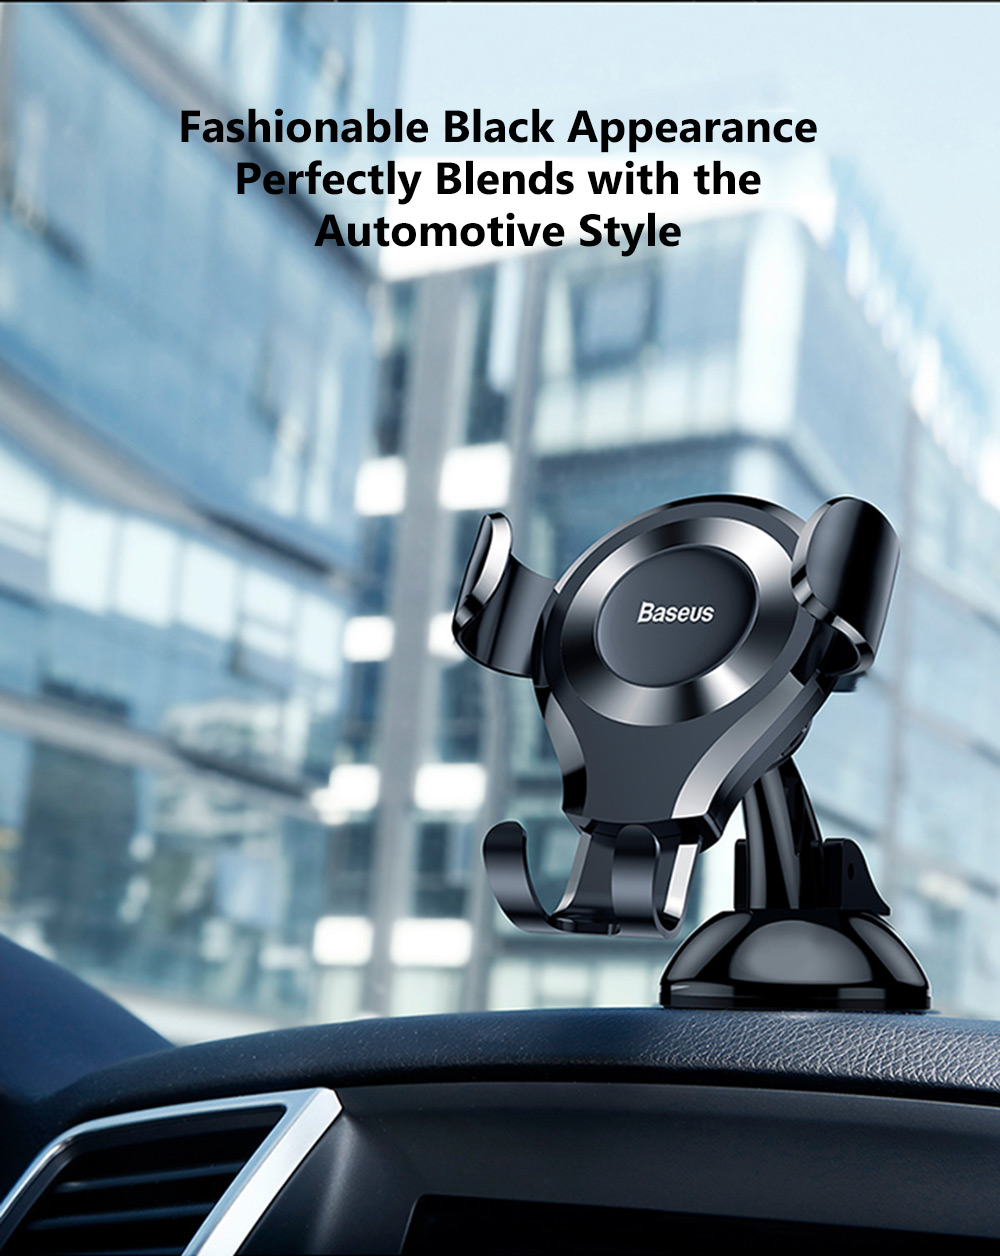 Baseus SUYL - XP01 Universal Gravity Car Phone Holder Adjustable Stand Mount- Black